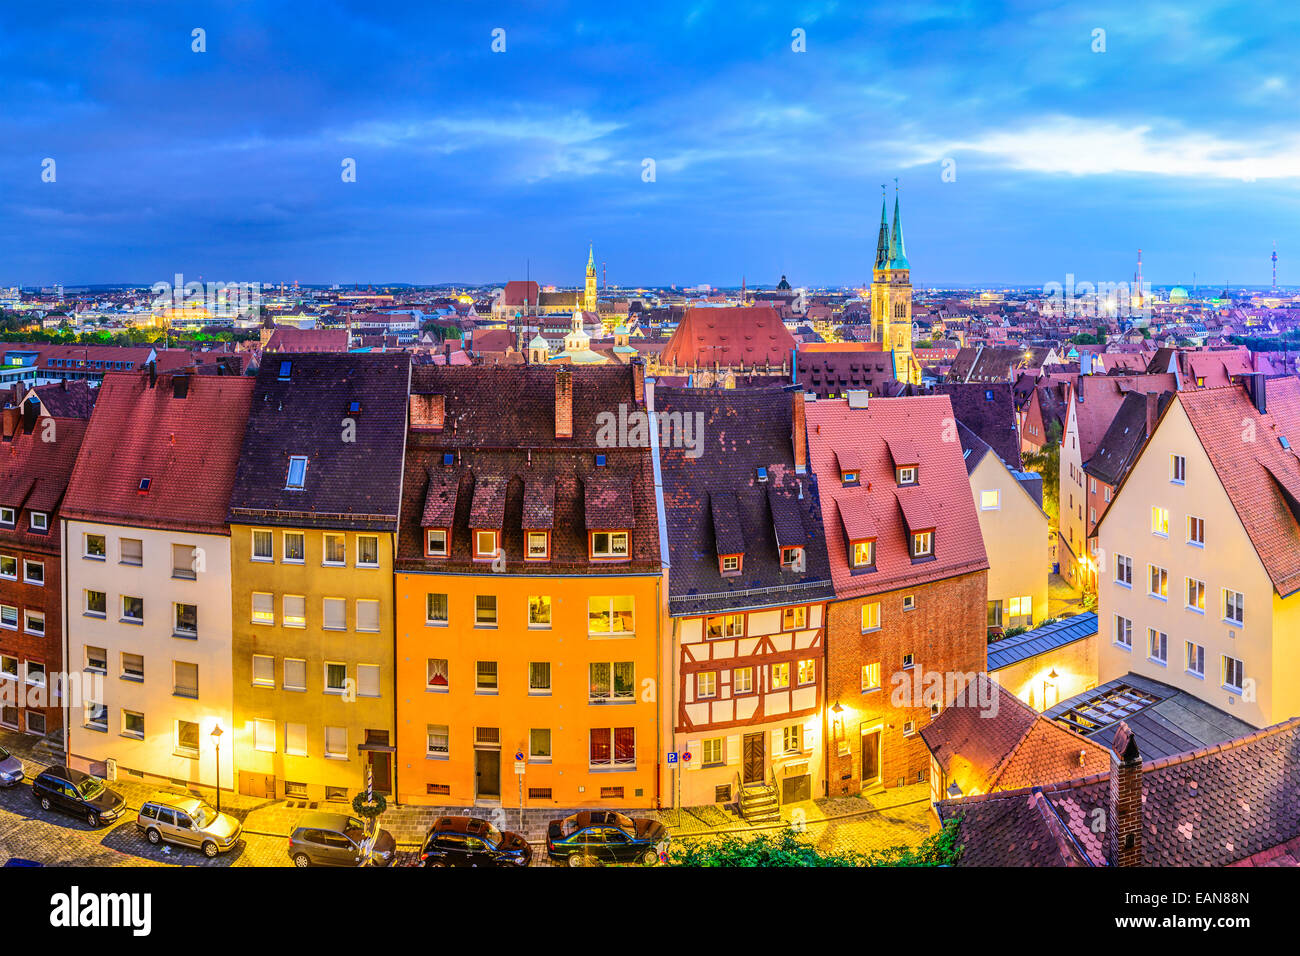 Nuremberg, Germany old city skyline. - Stock Image